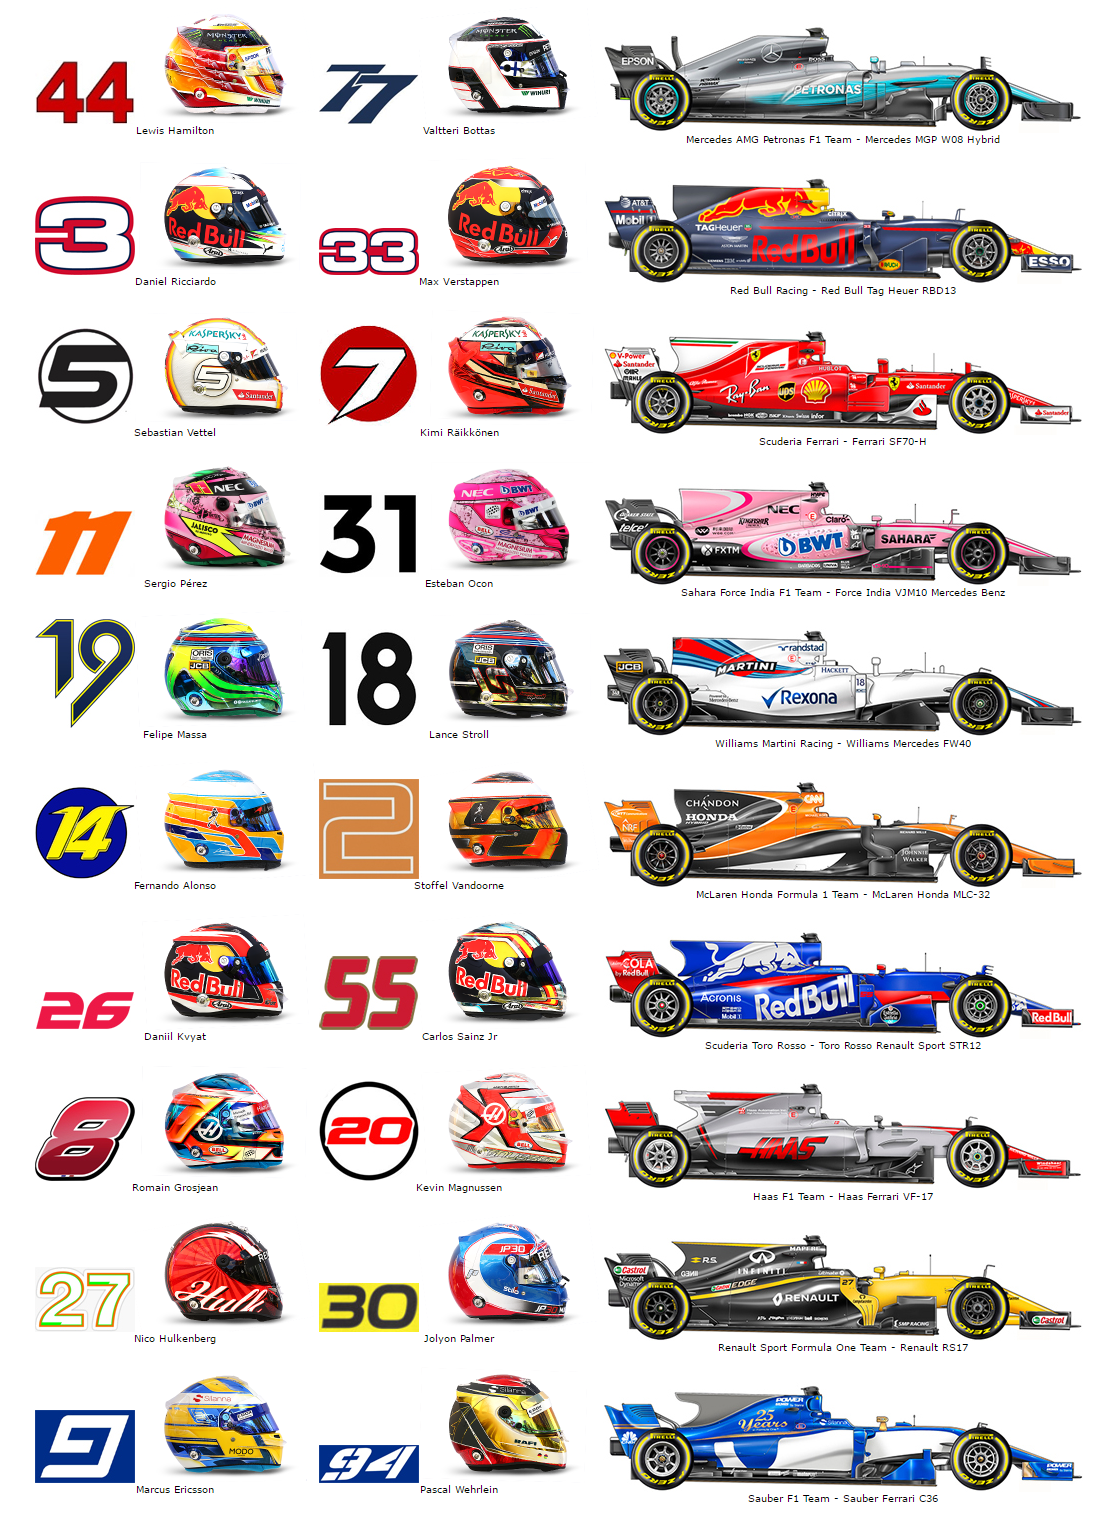 Spotter Guide The F1 News